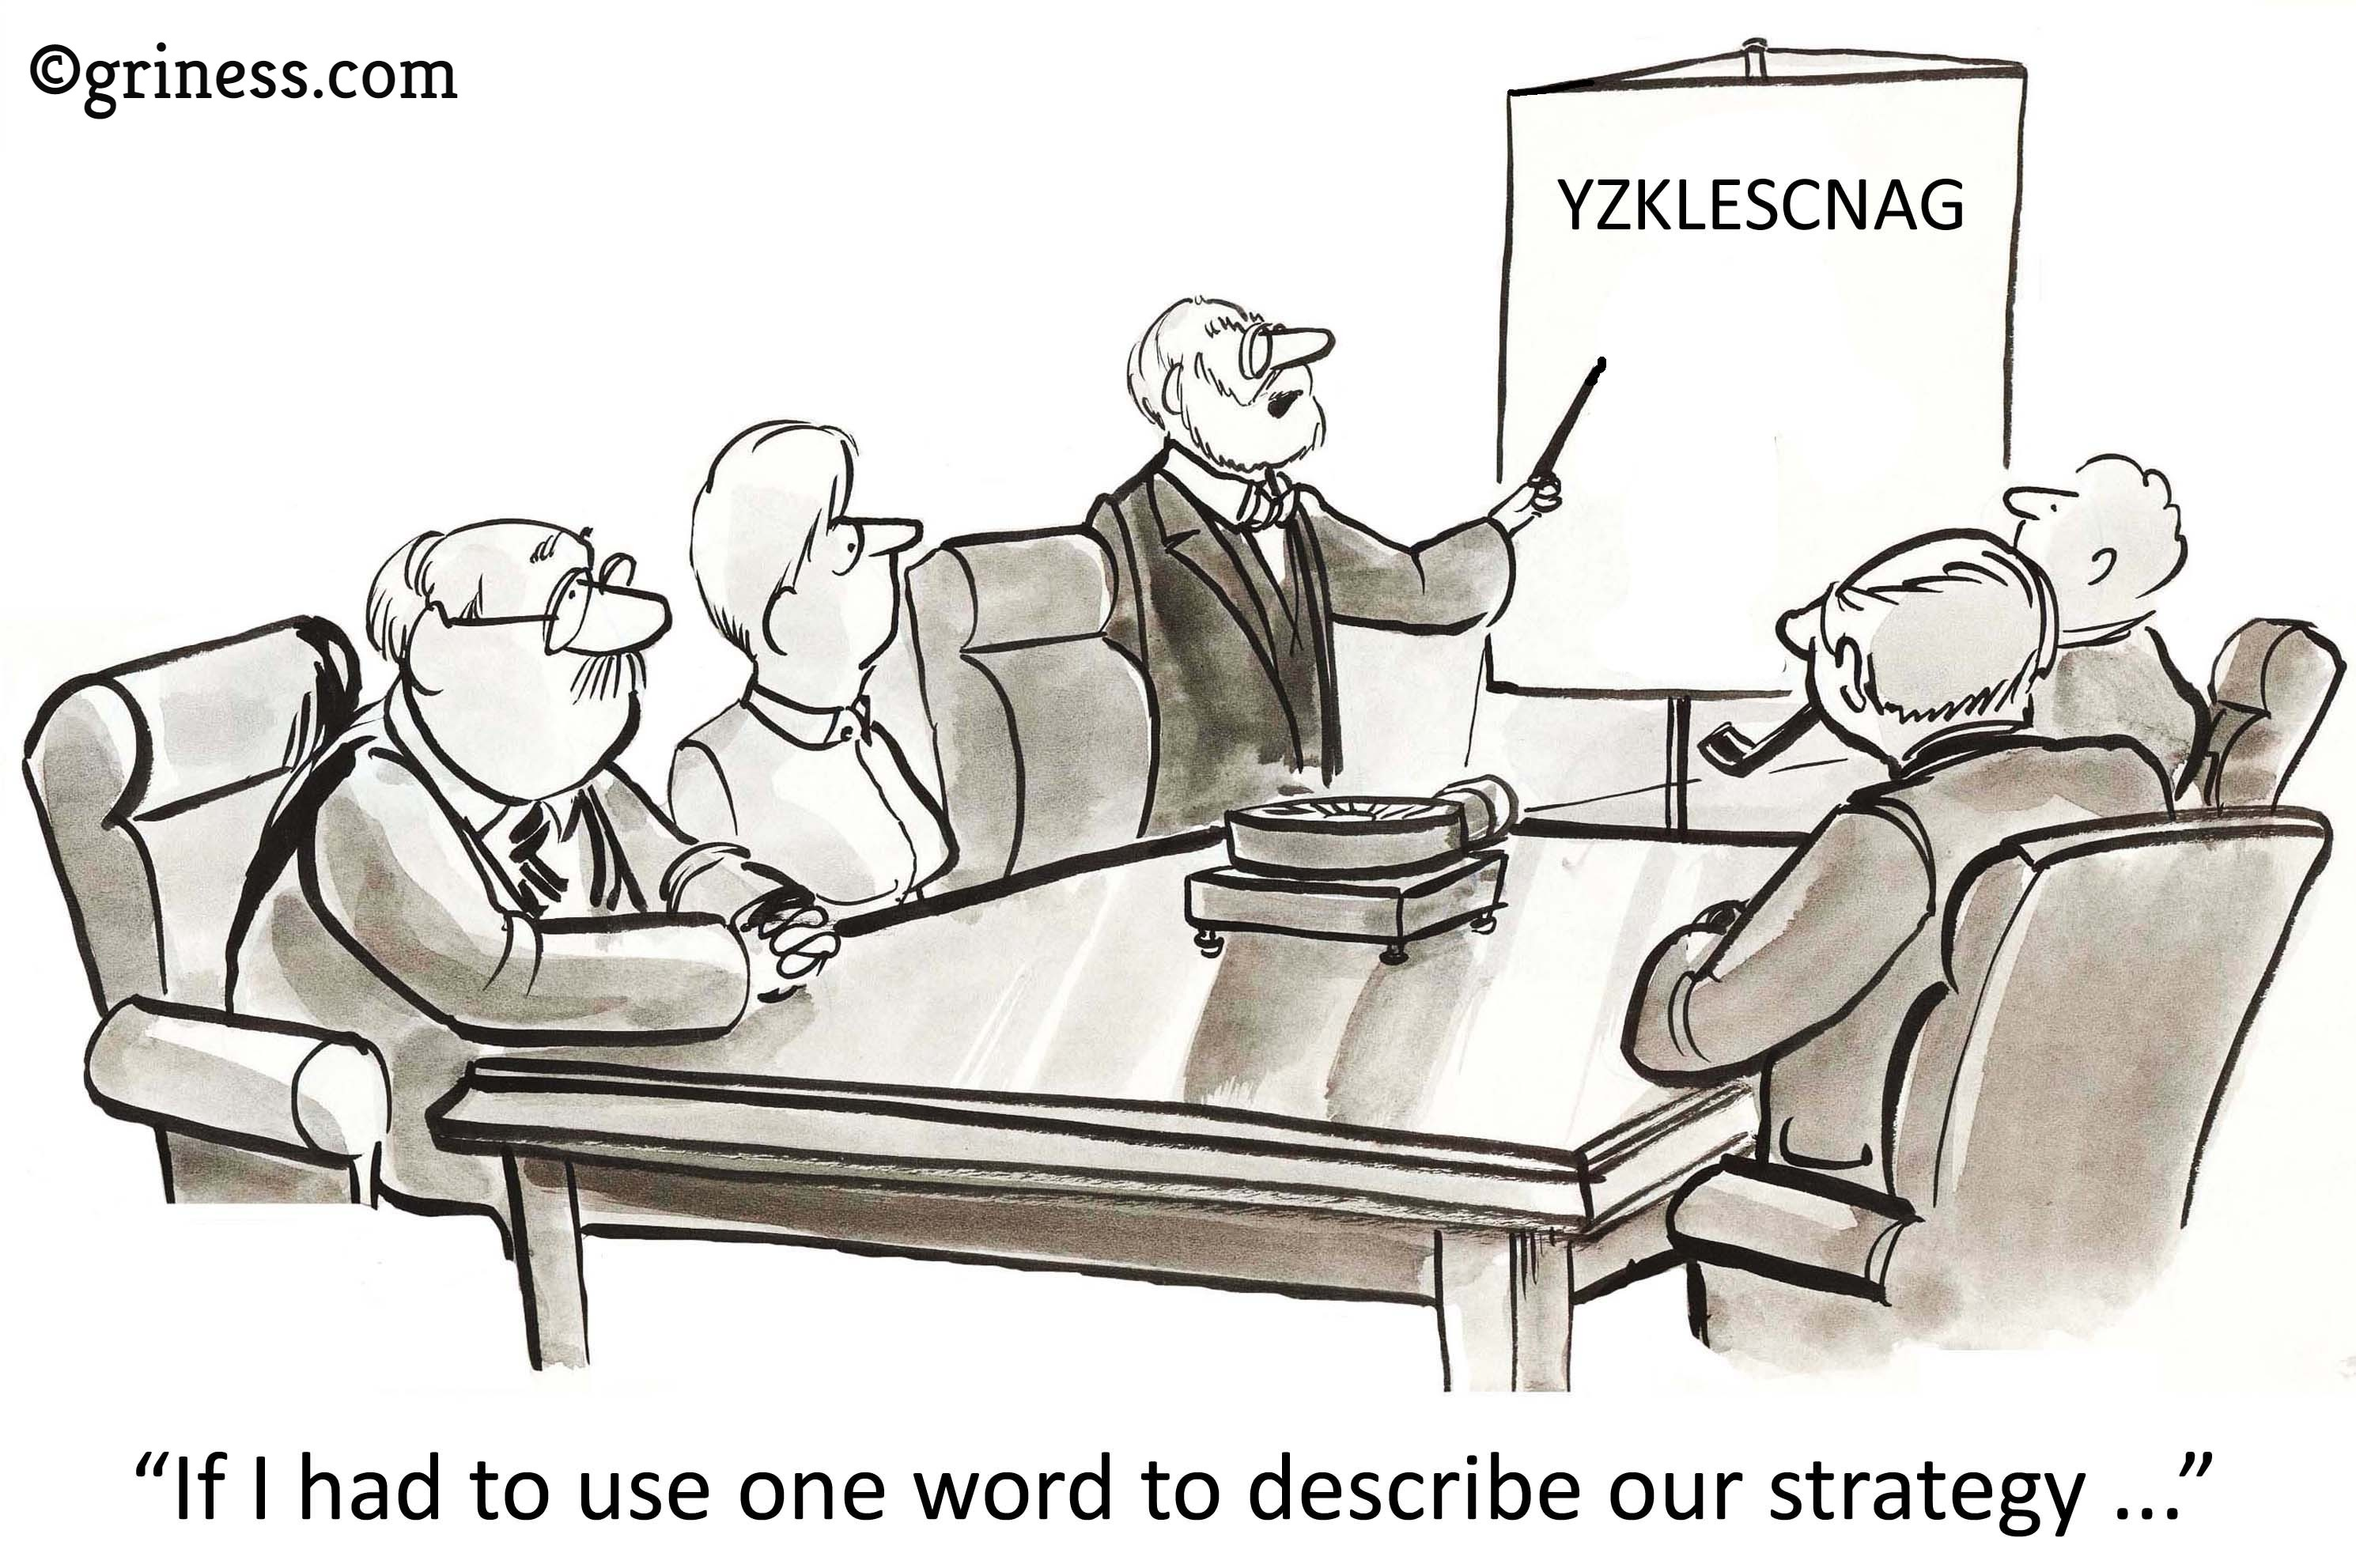 if i had to use one word to describe our strategy griness com corporate jokes free business cartoons